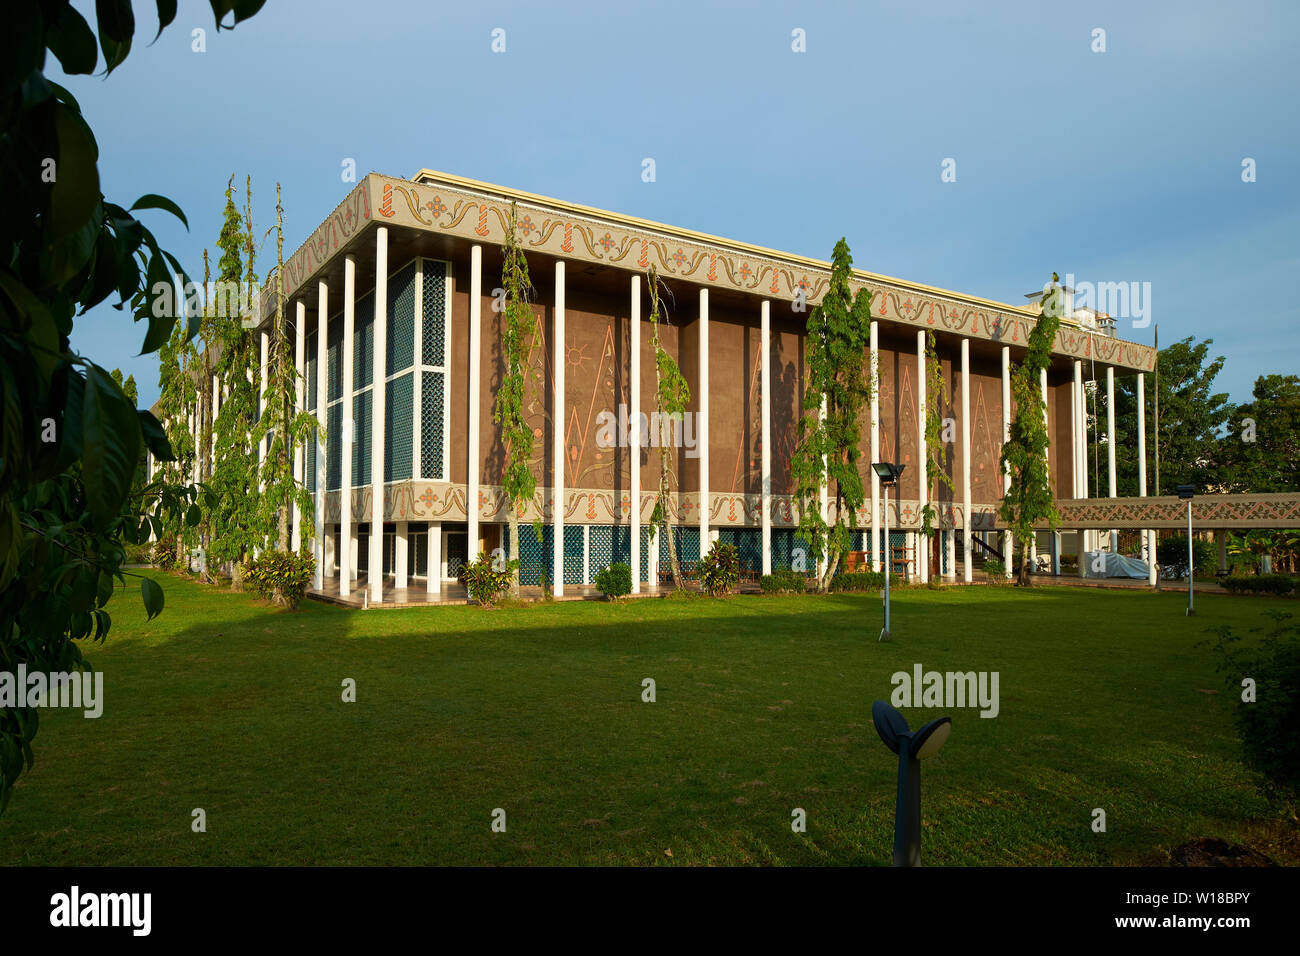 Exterior view of the Legislative building in Bandar Seri Begawan, Brunei - Stock Image